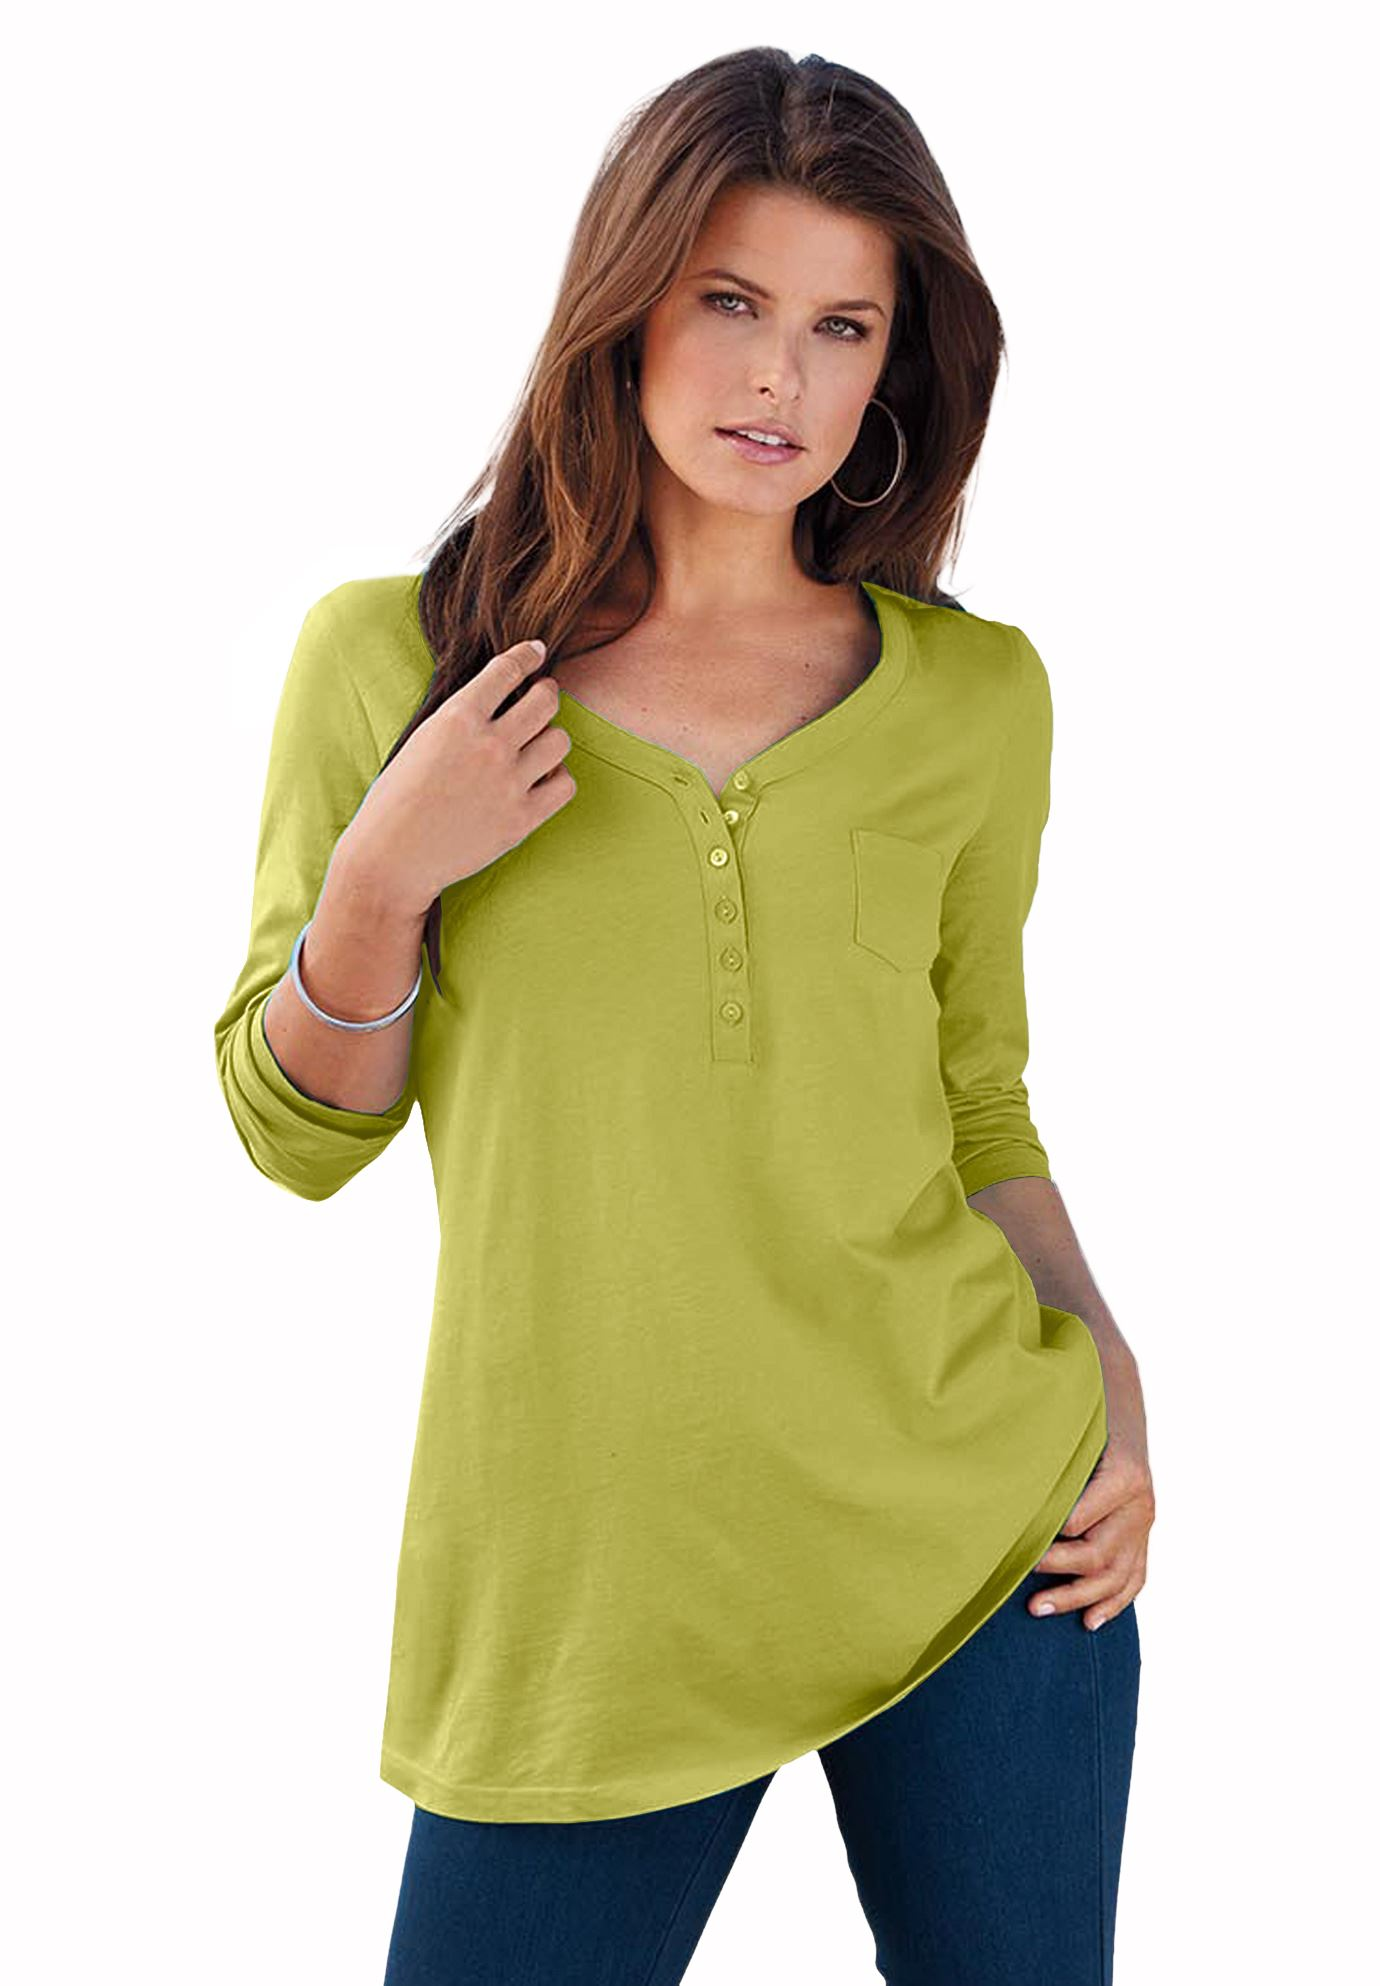 f52cfc8562a0d Long-Sleeve Henley Ultimate Tee with Sweetheart Neck